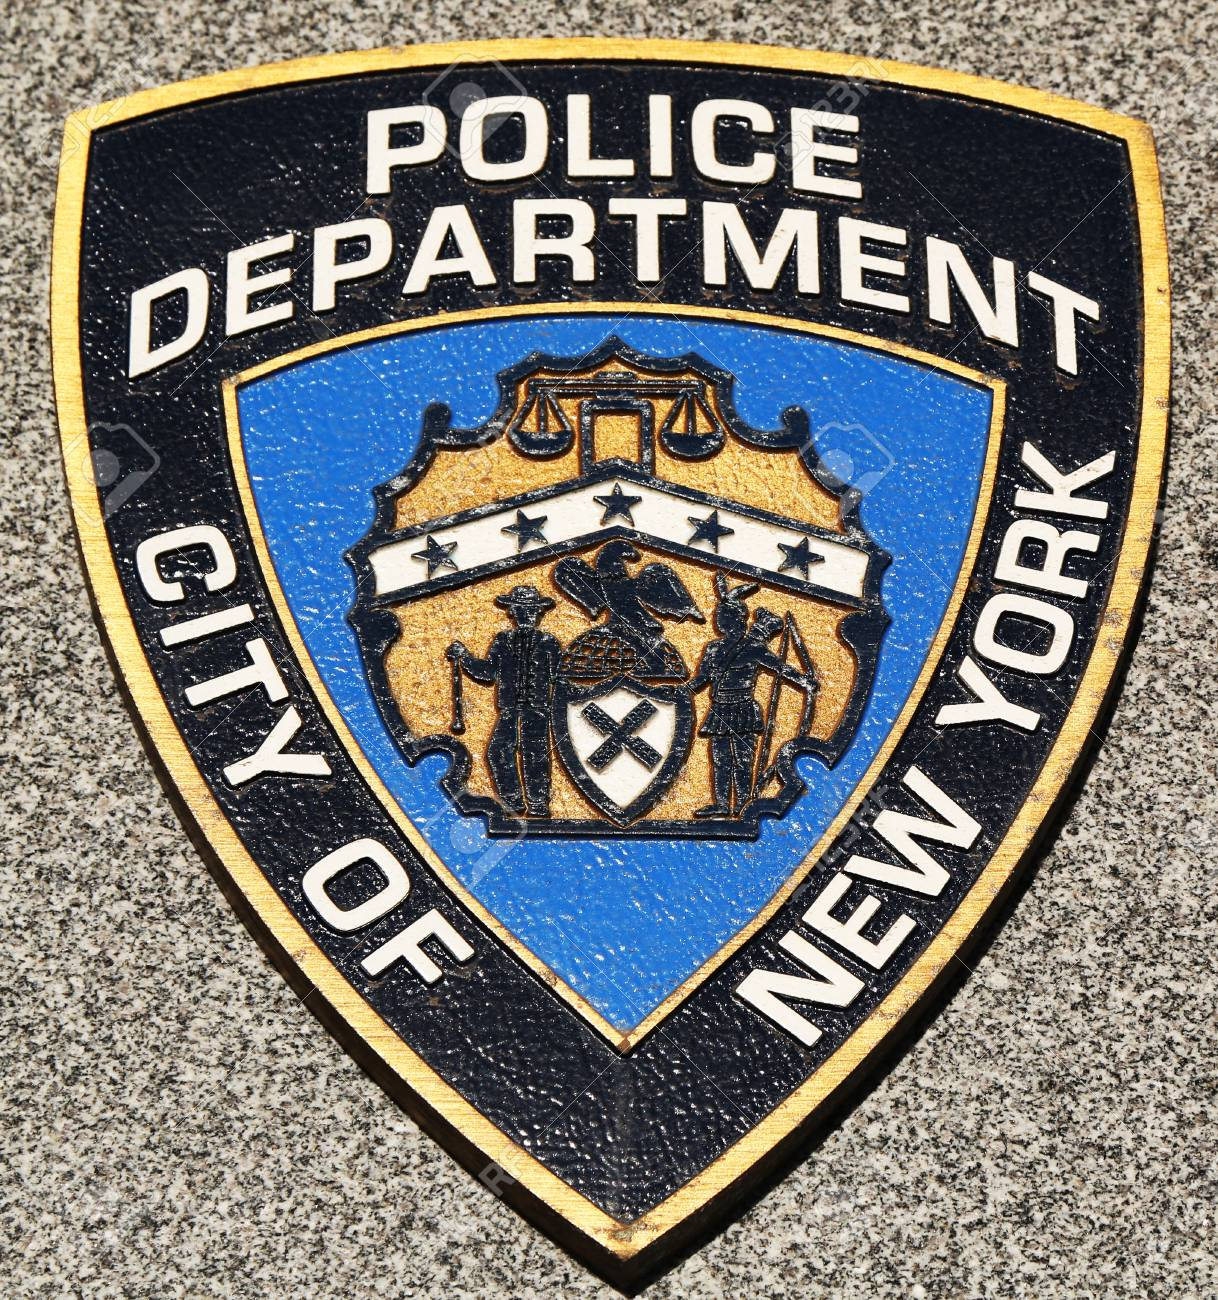 Brooklynnew York March 9 Nypd Emblem On Fallen Officers Memorial